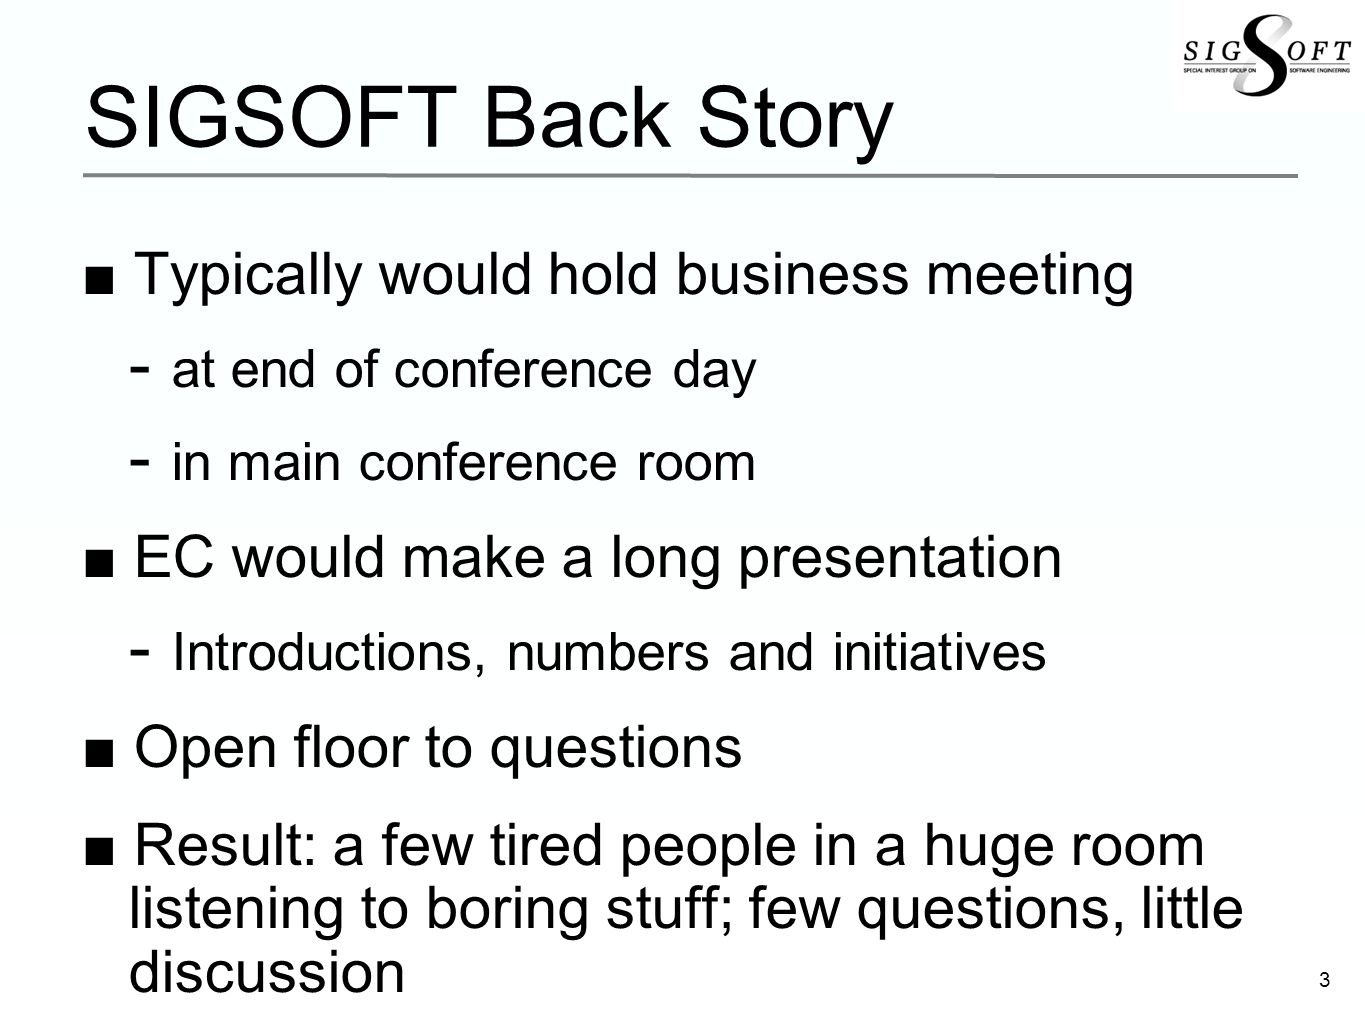 3 SIGSOFT Back Story Typically would hold business meeting at end of conference day in main conference room EC would make a long presentation Introductions, numbers and initiatives Open floor to questions Result: a few tired people in a huge room listening to boring stuff; few questions, little discussion